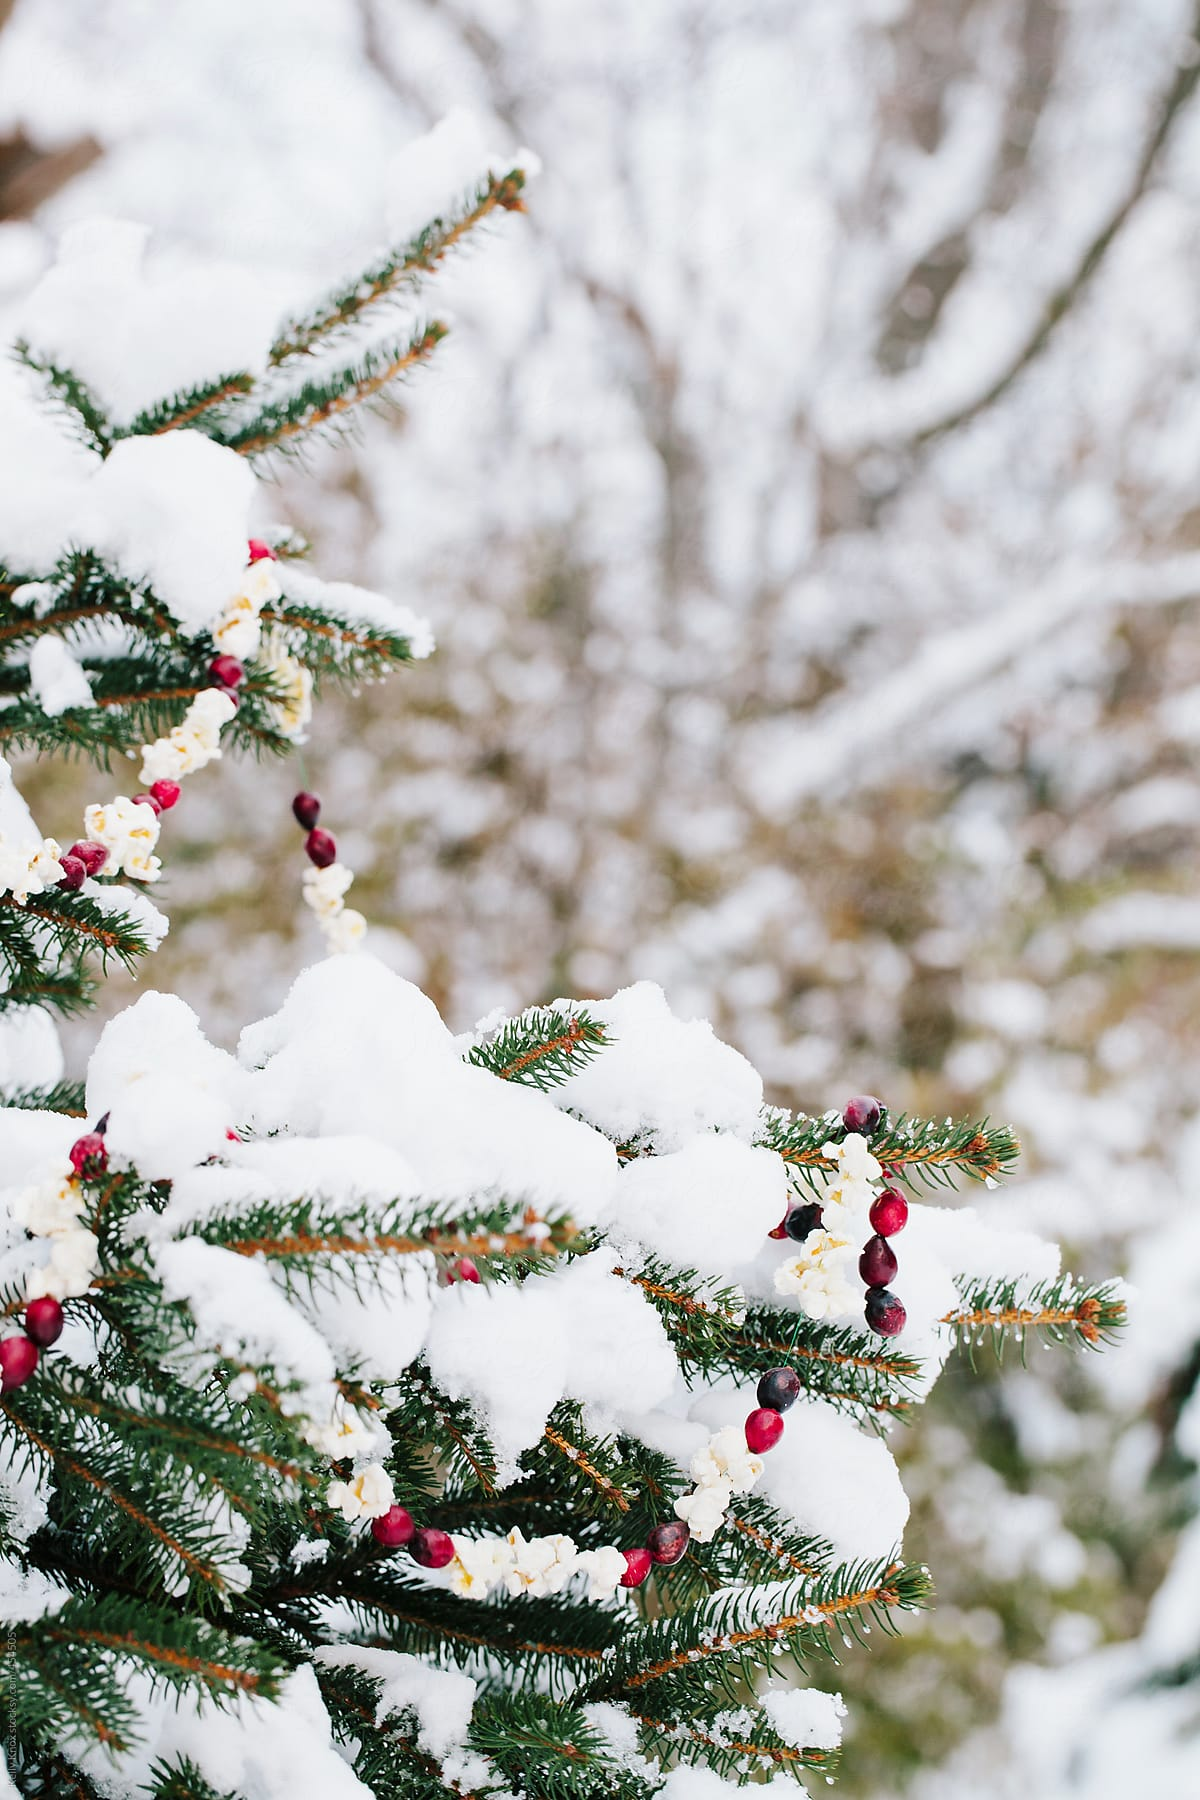 Snow Covered Fir Tree Decorated With Cranberry And Popcorn Garland